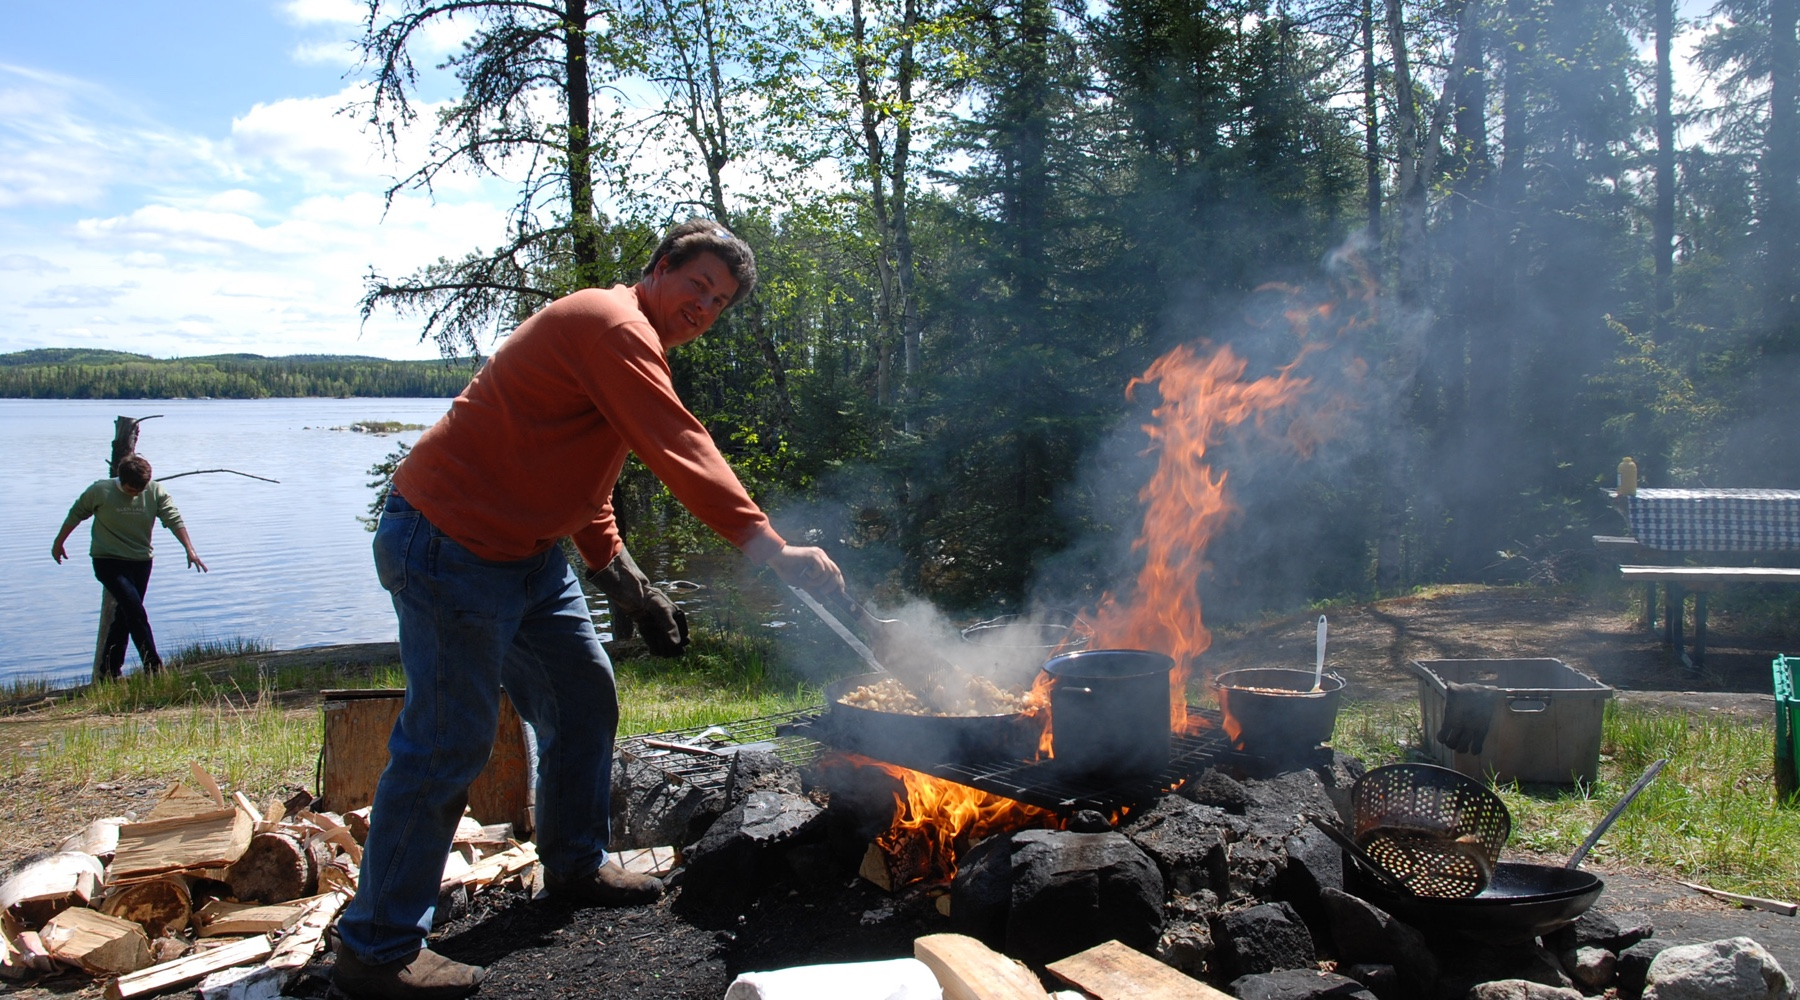 Loch island lodge loch island lodge camp lochalsh for Ontario fishing lodges and resorts